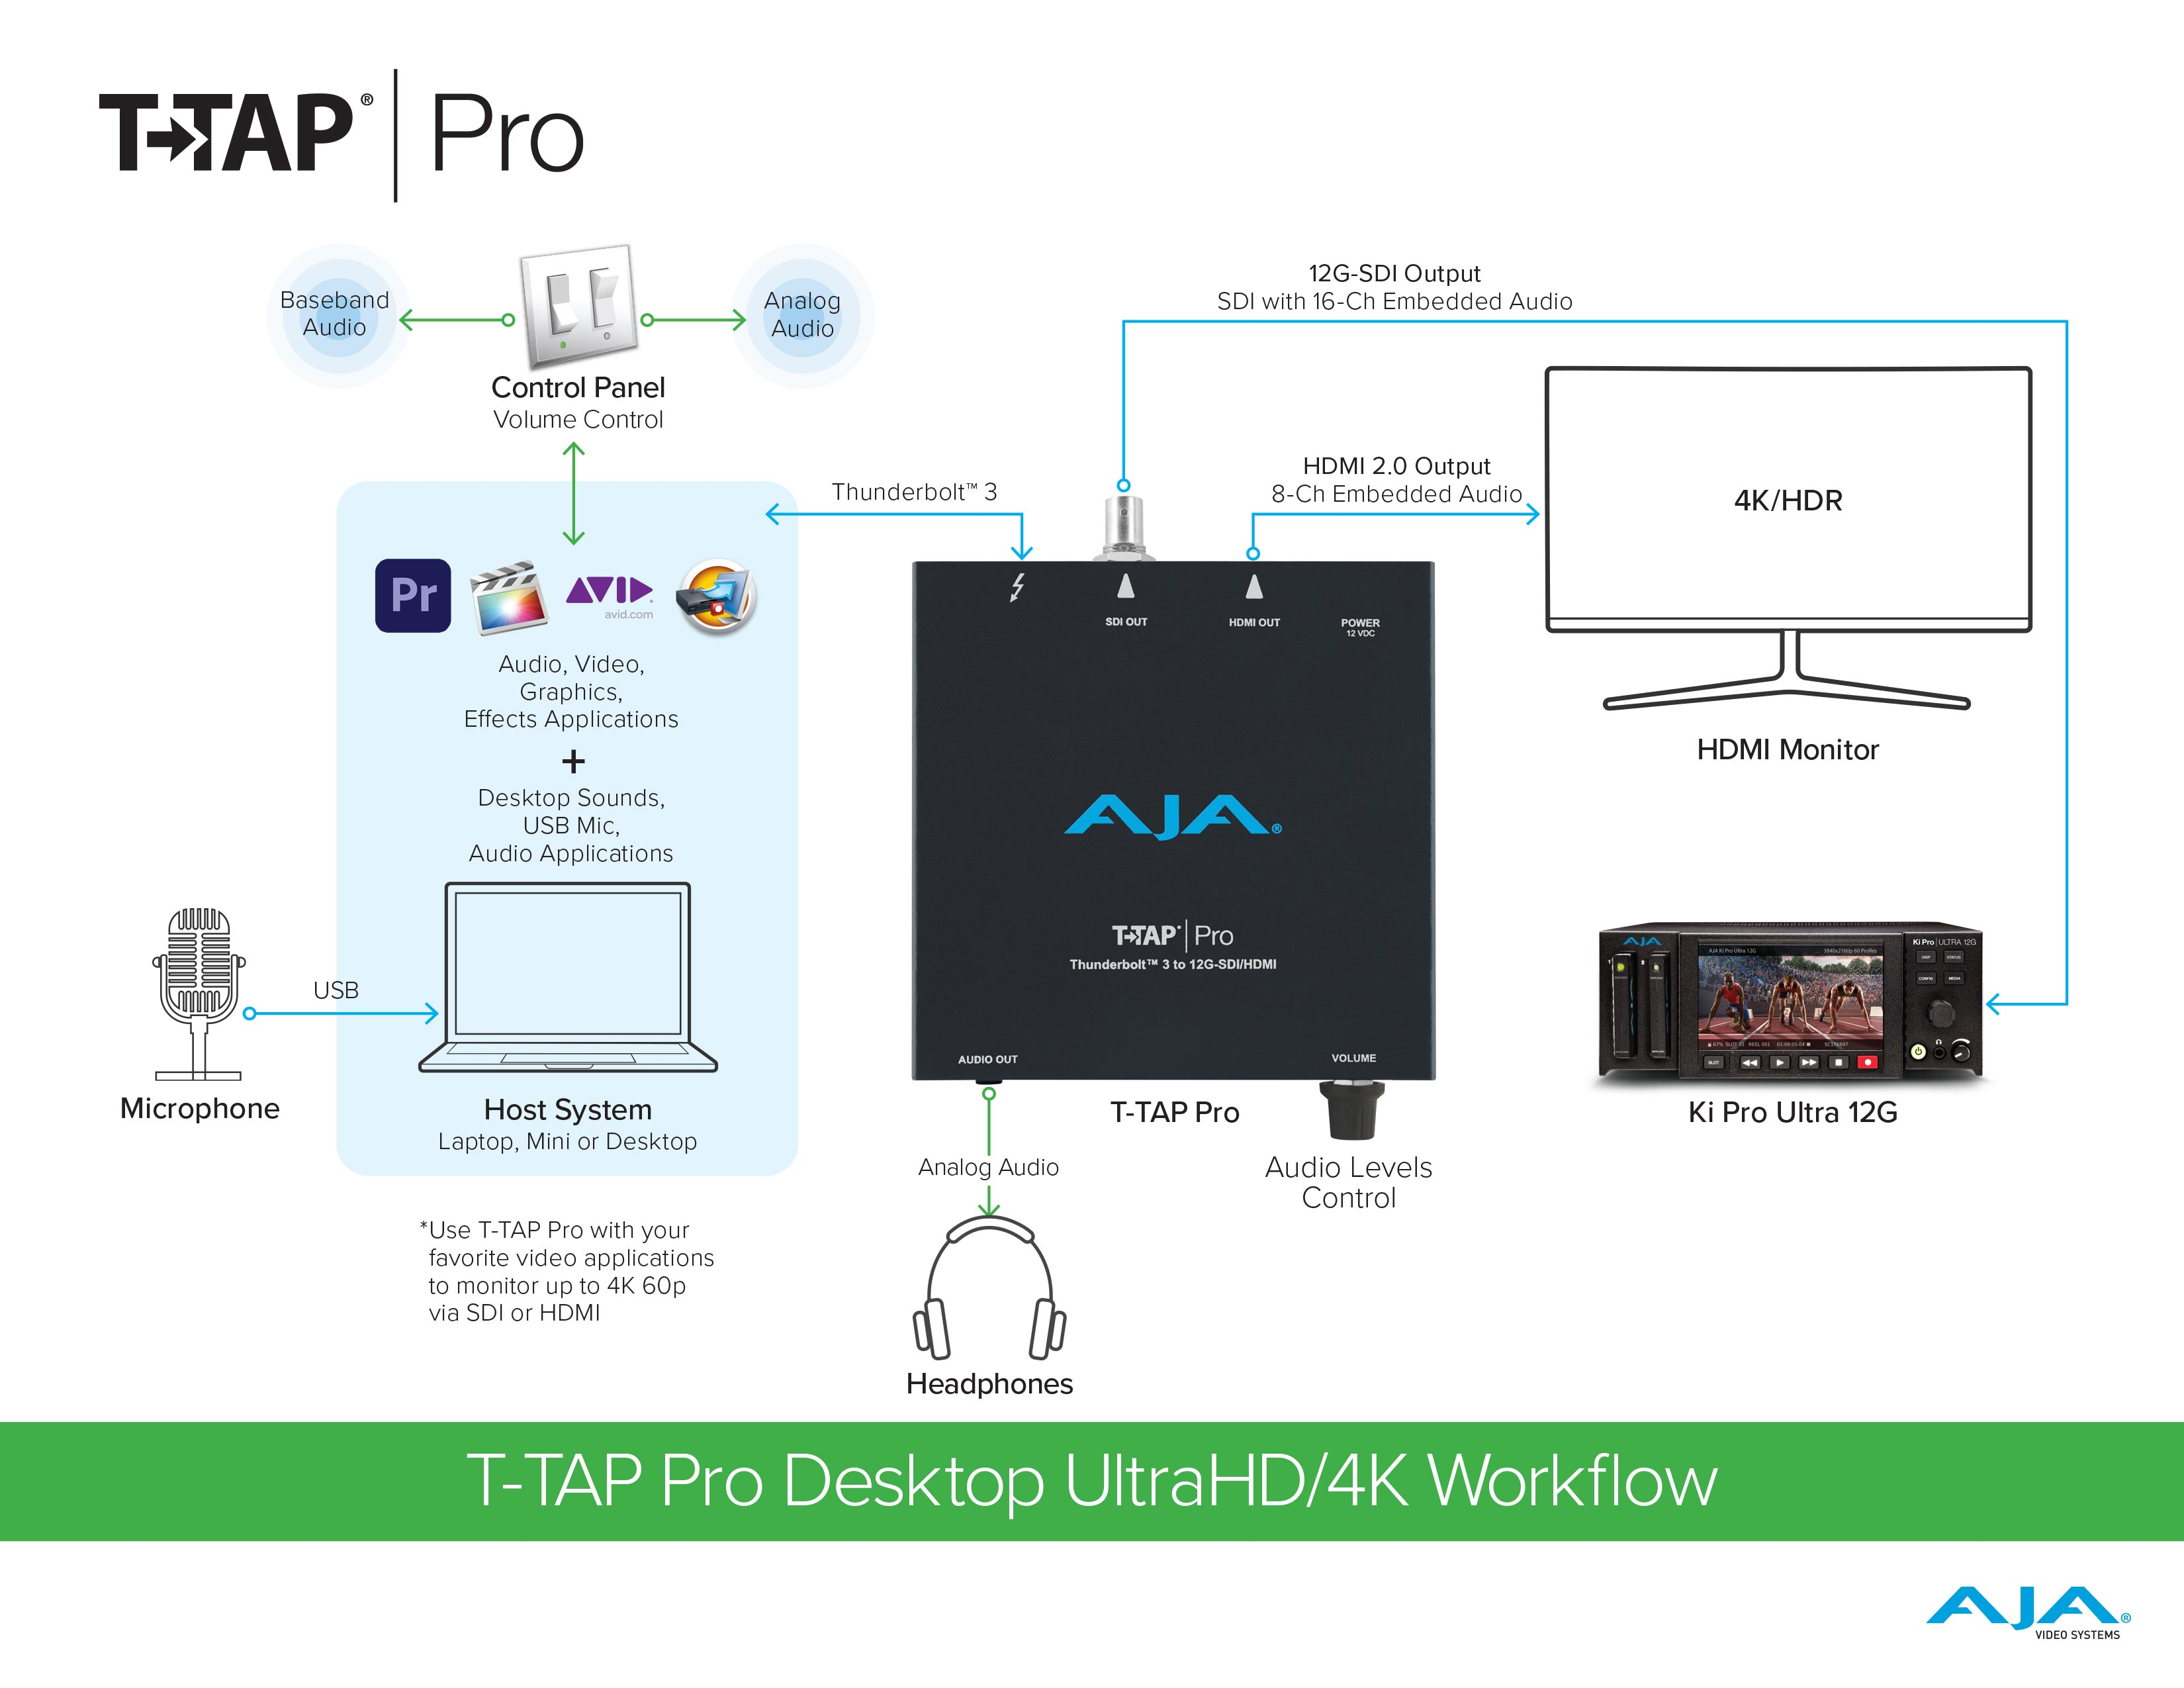 AJA T-TAP Pro: a portable Thunderbolt 3 device for video monitoring